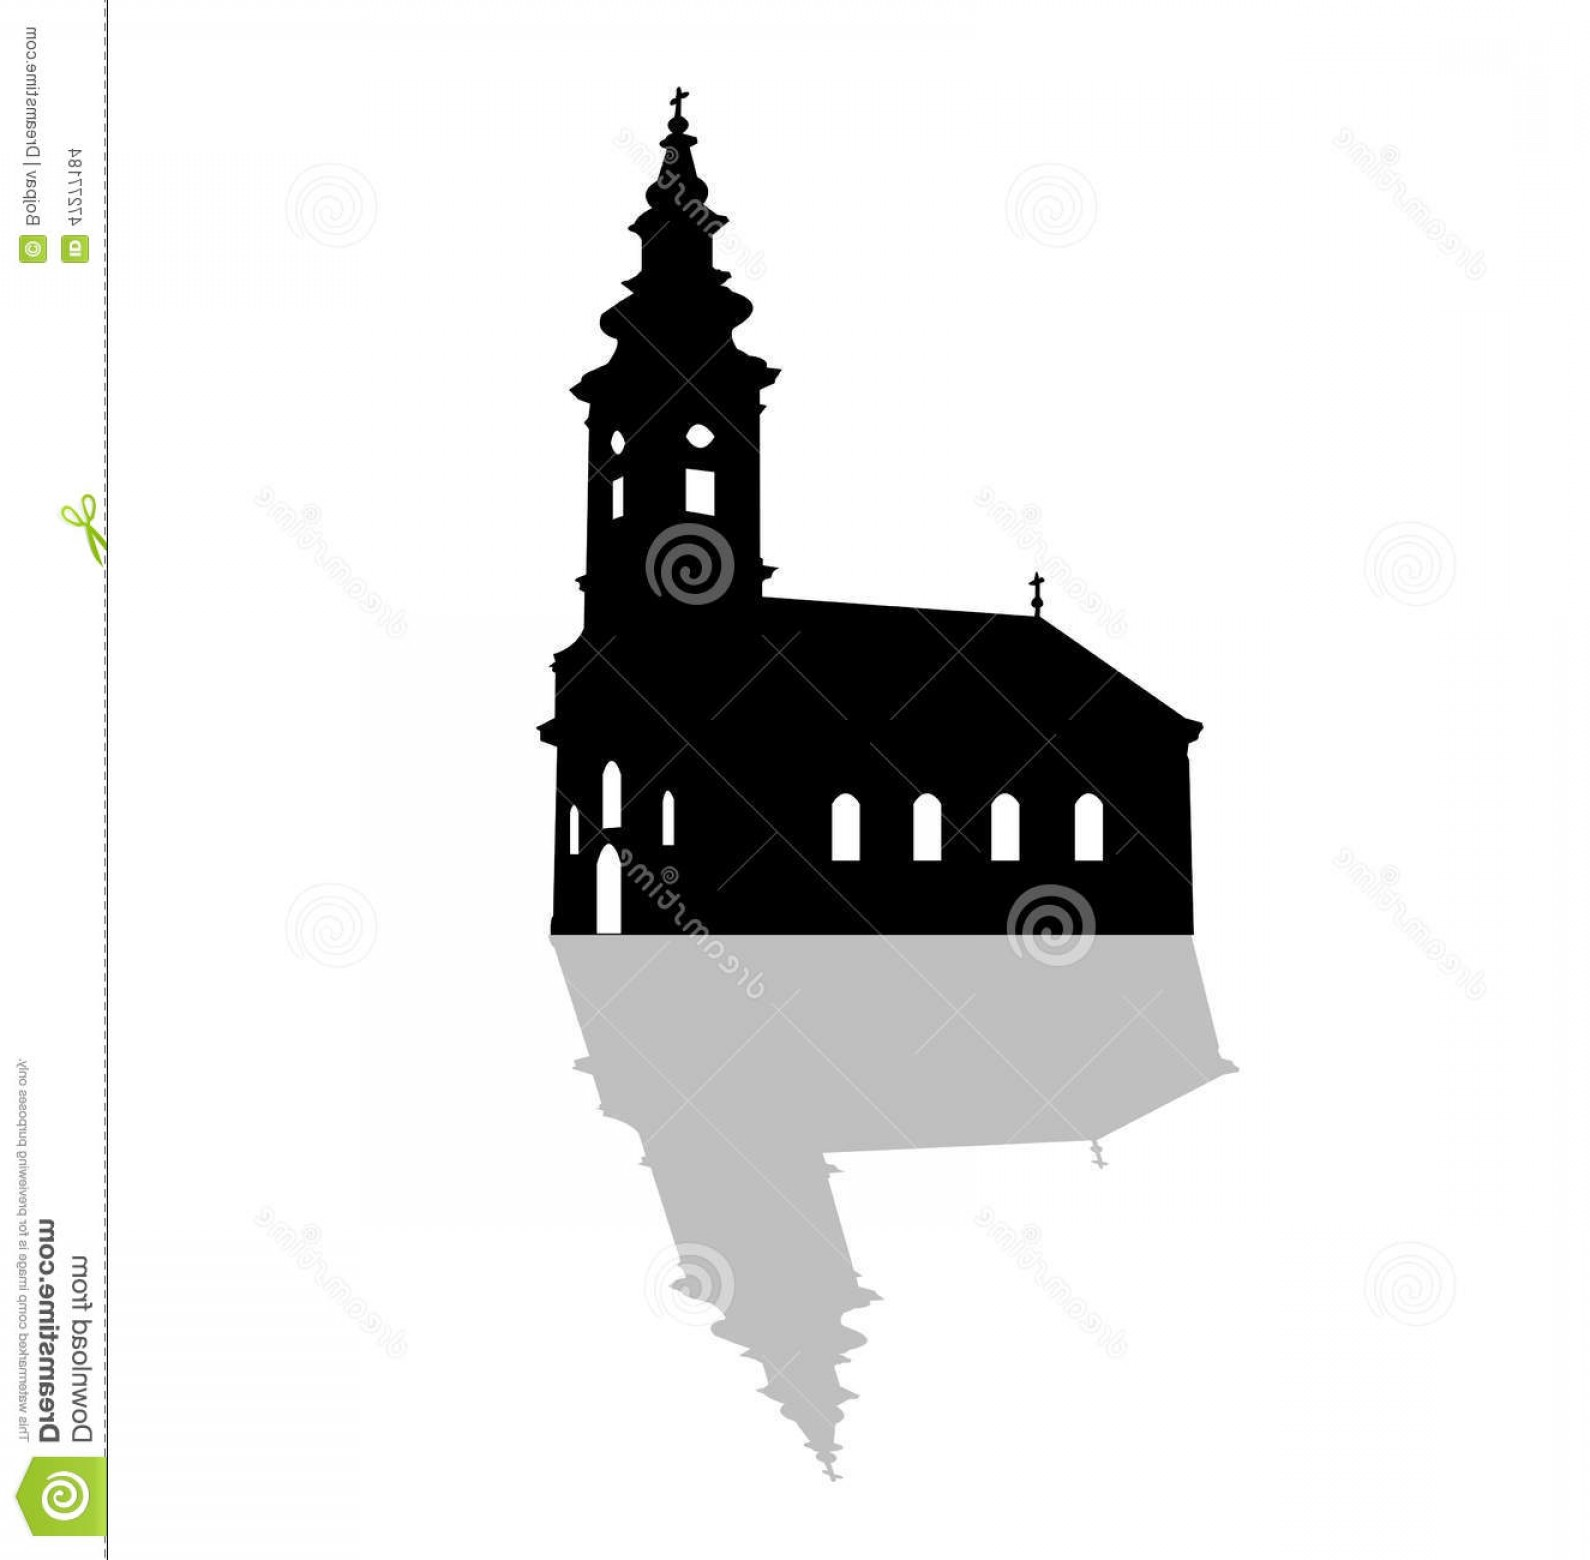 Church Silhouette Vector: Stock Illustration Serbian Orthodox Church Vector Silhouette Image